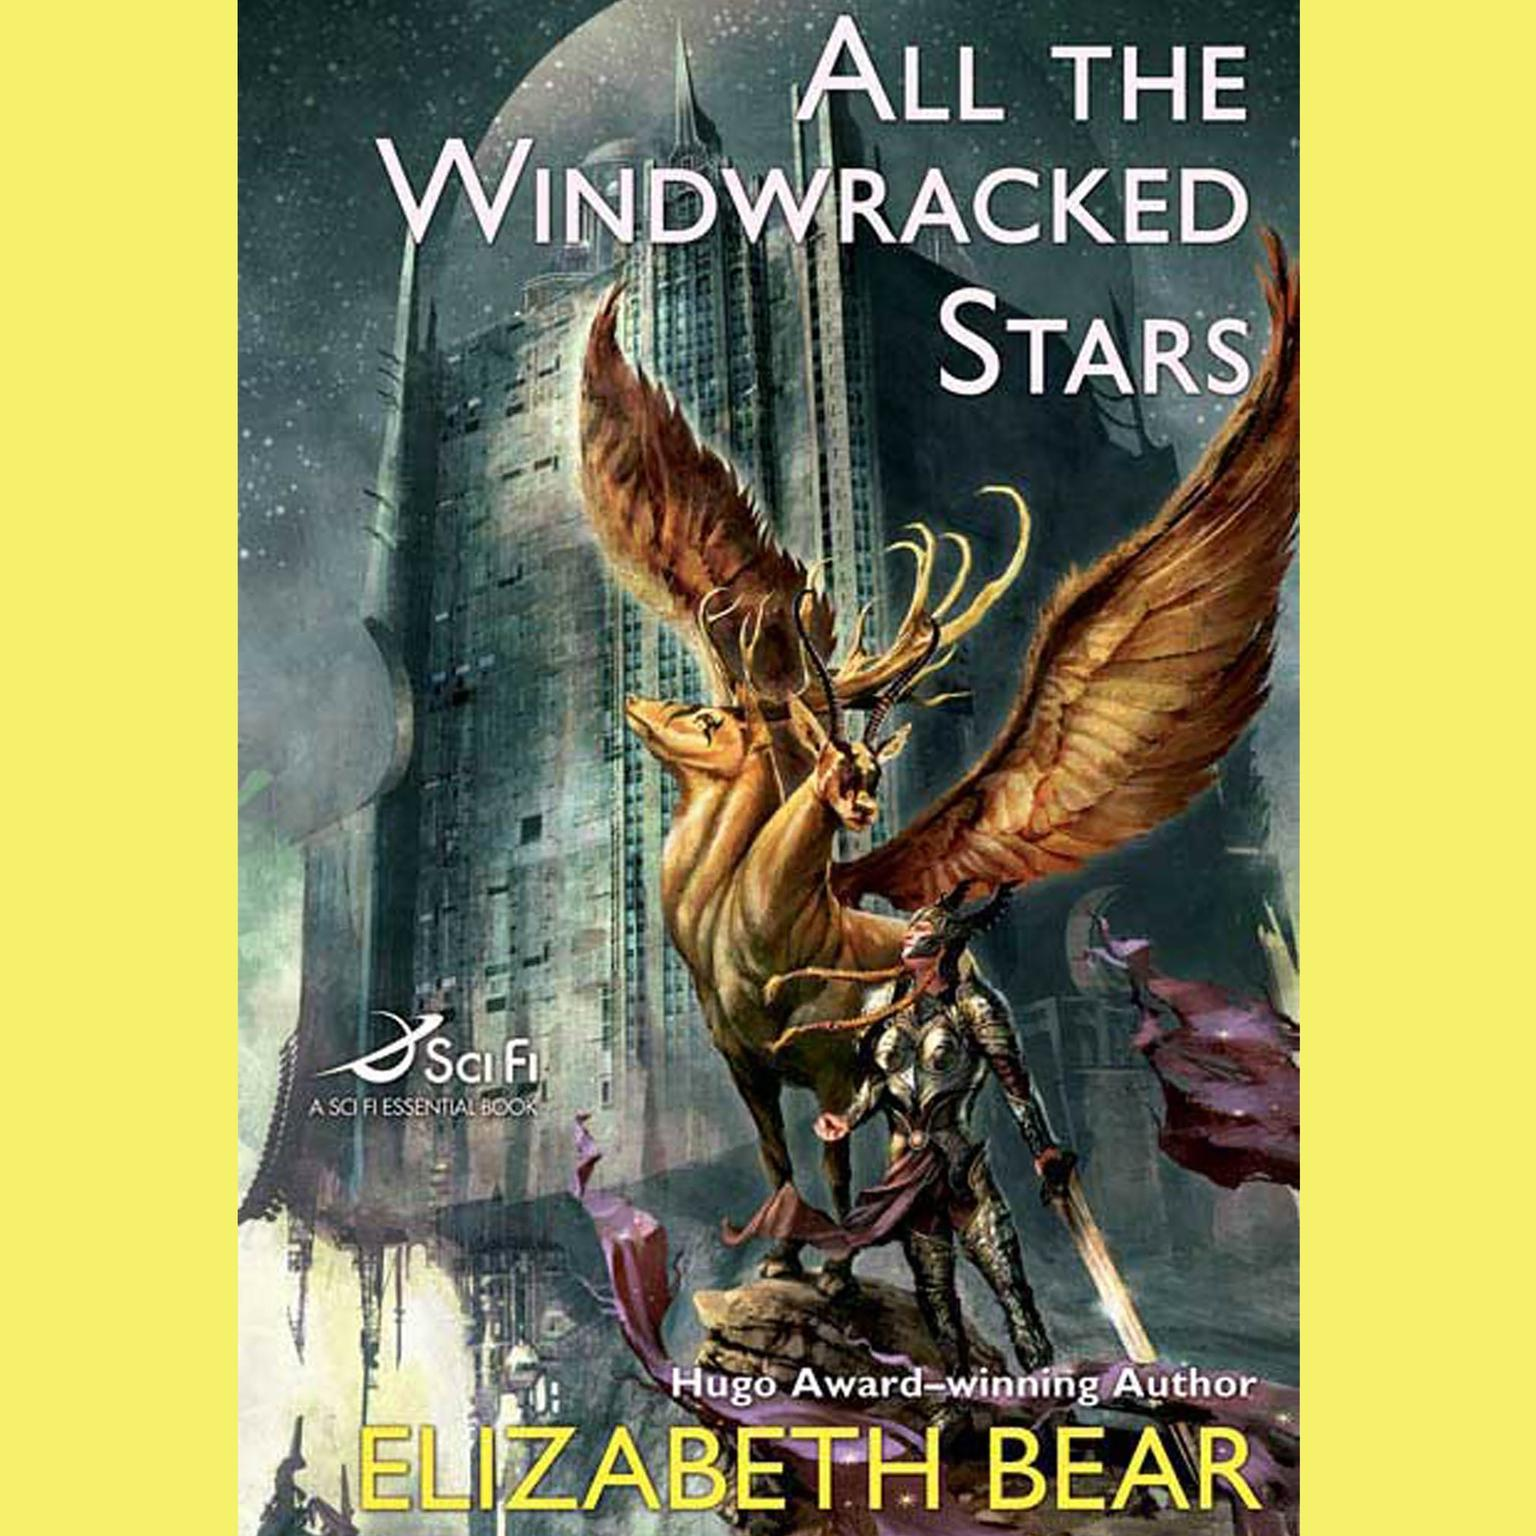 Printable All the Windwracked Stars Audiobook Cover Art